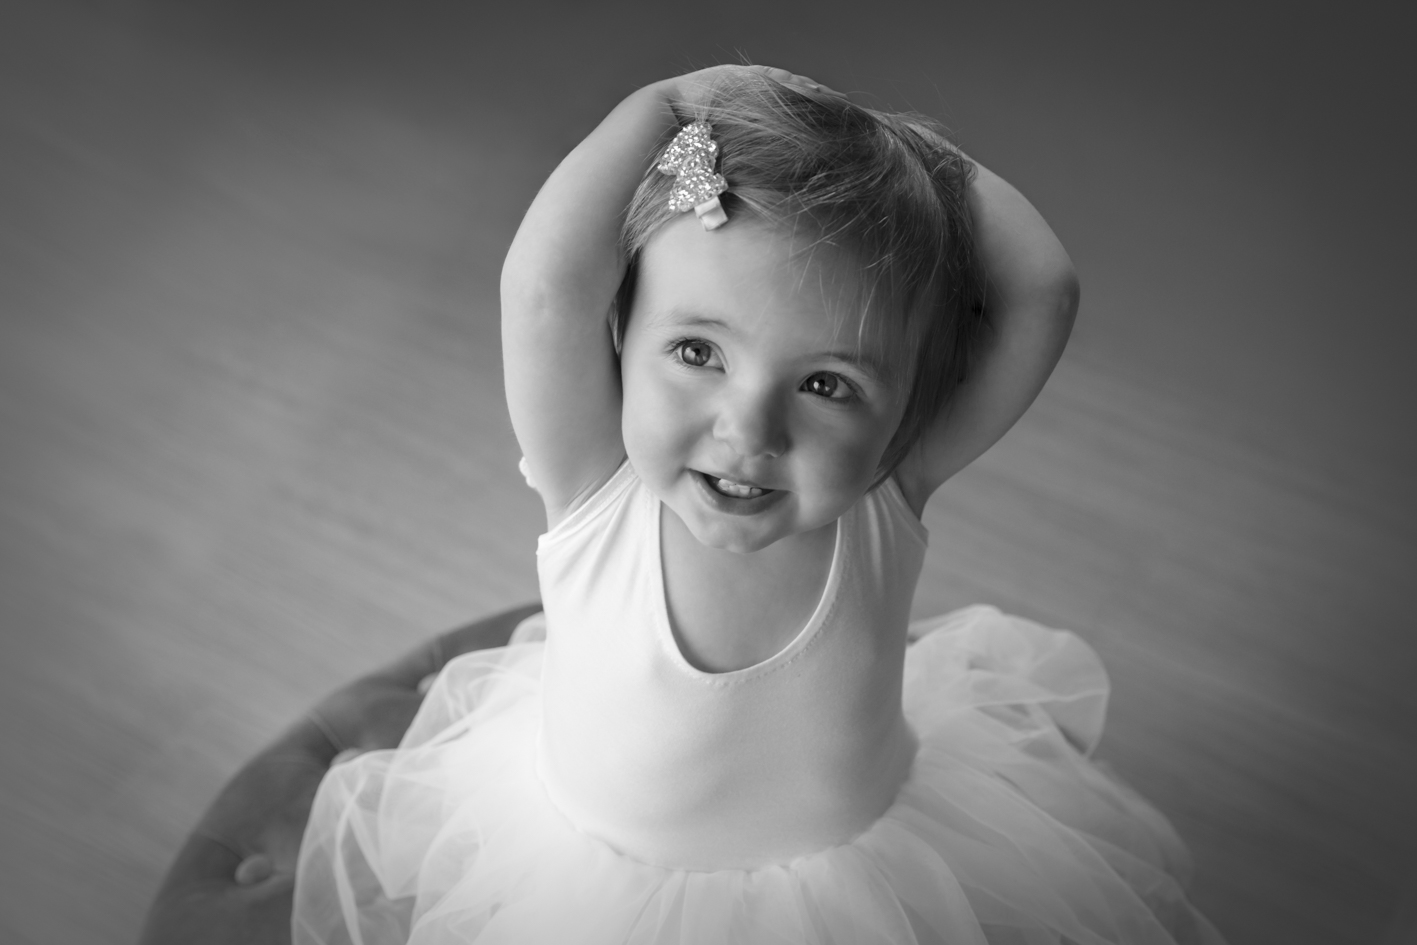 cute girl in ballerina dress